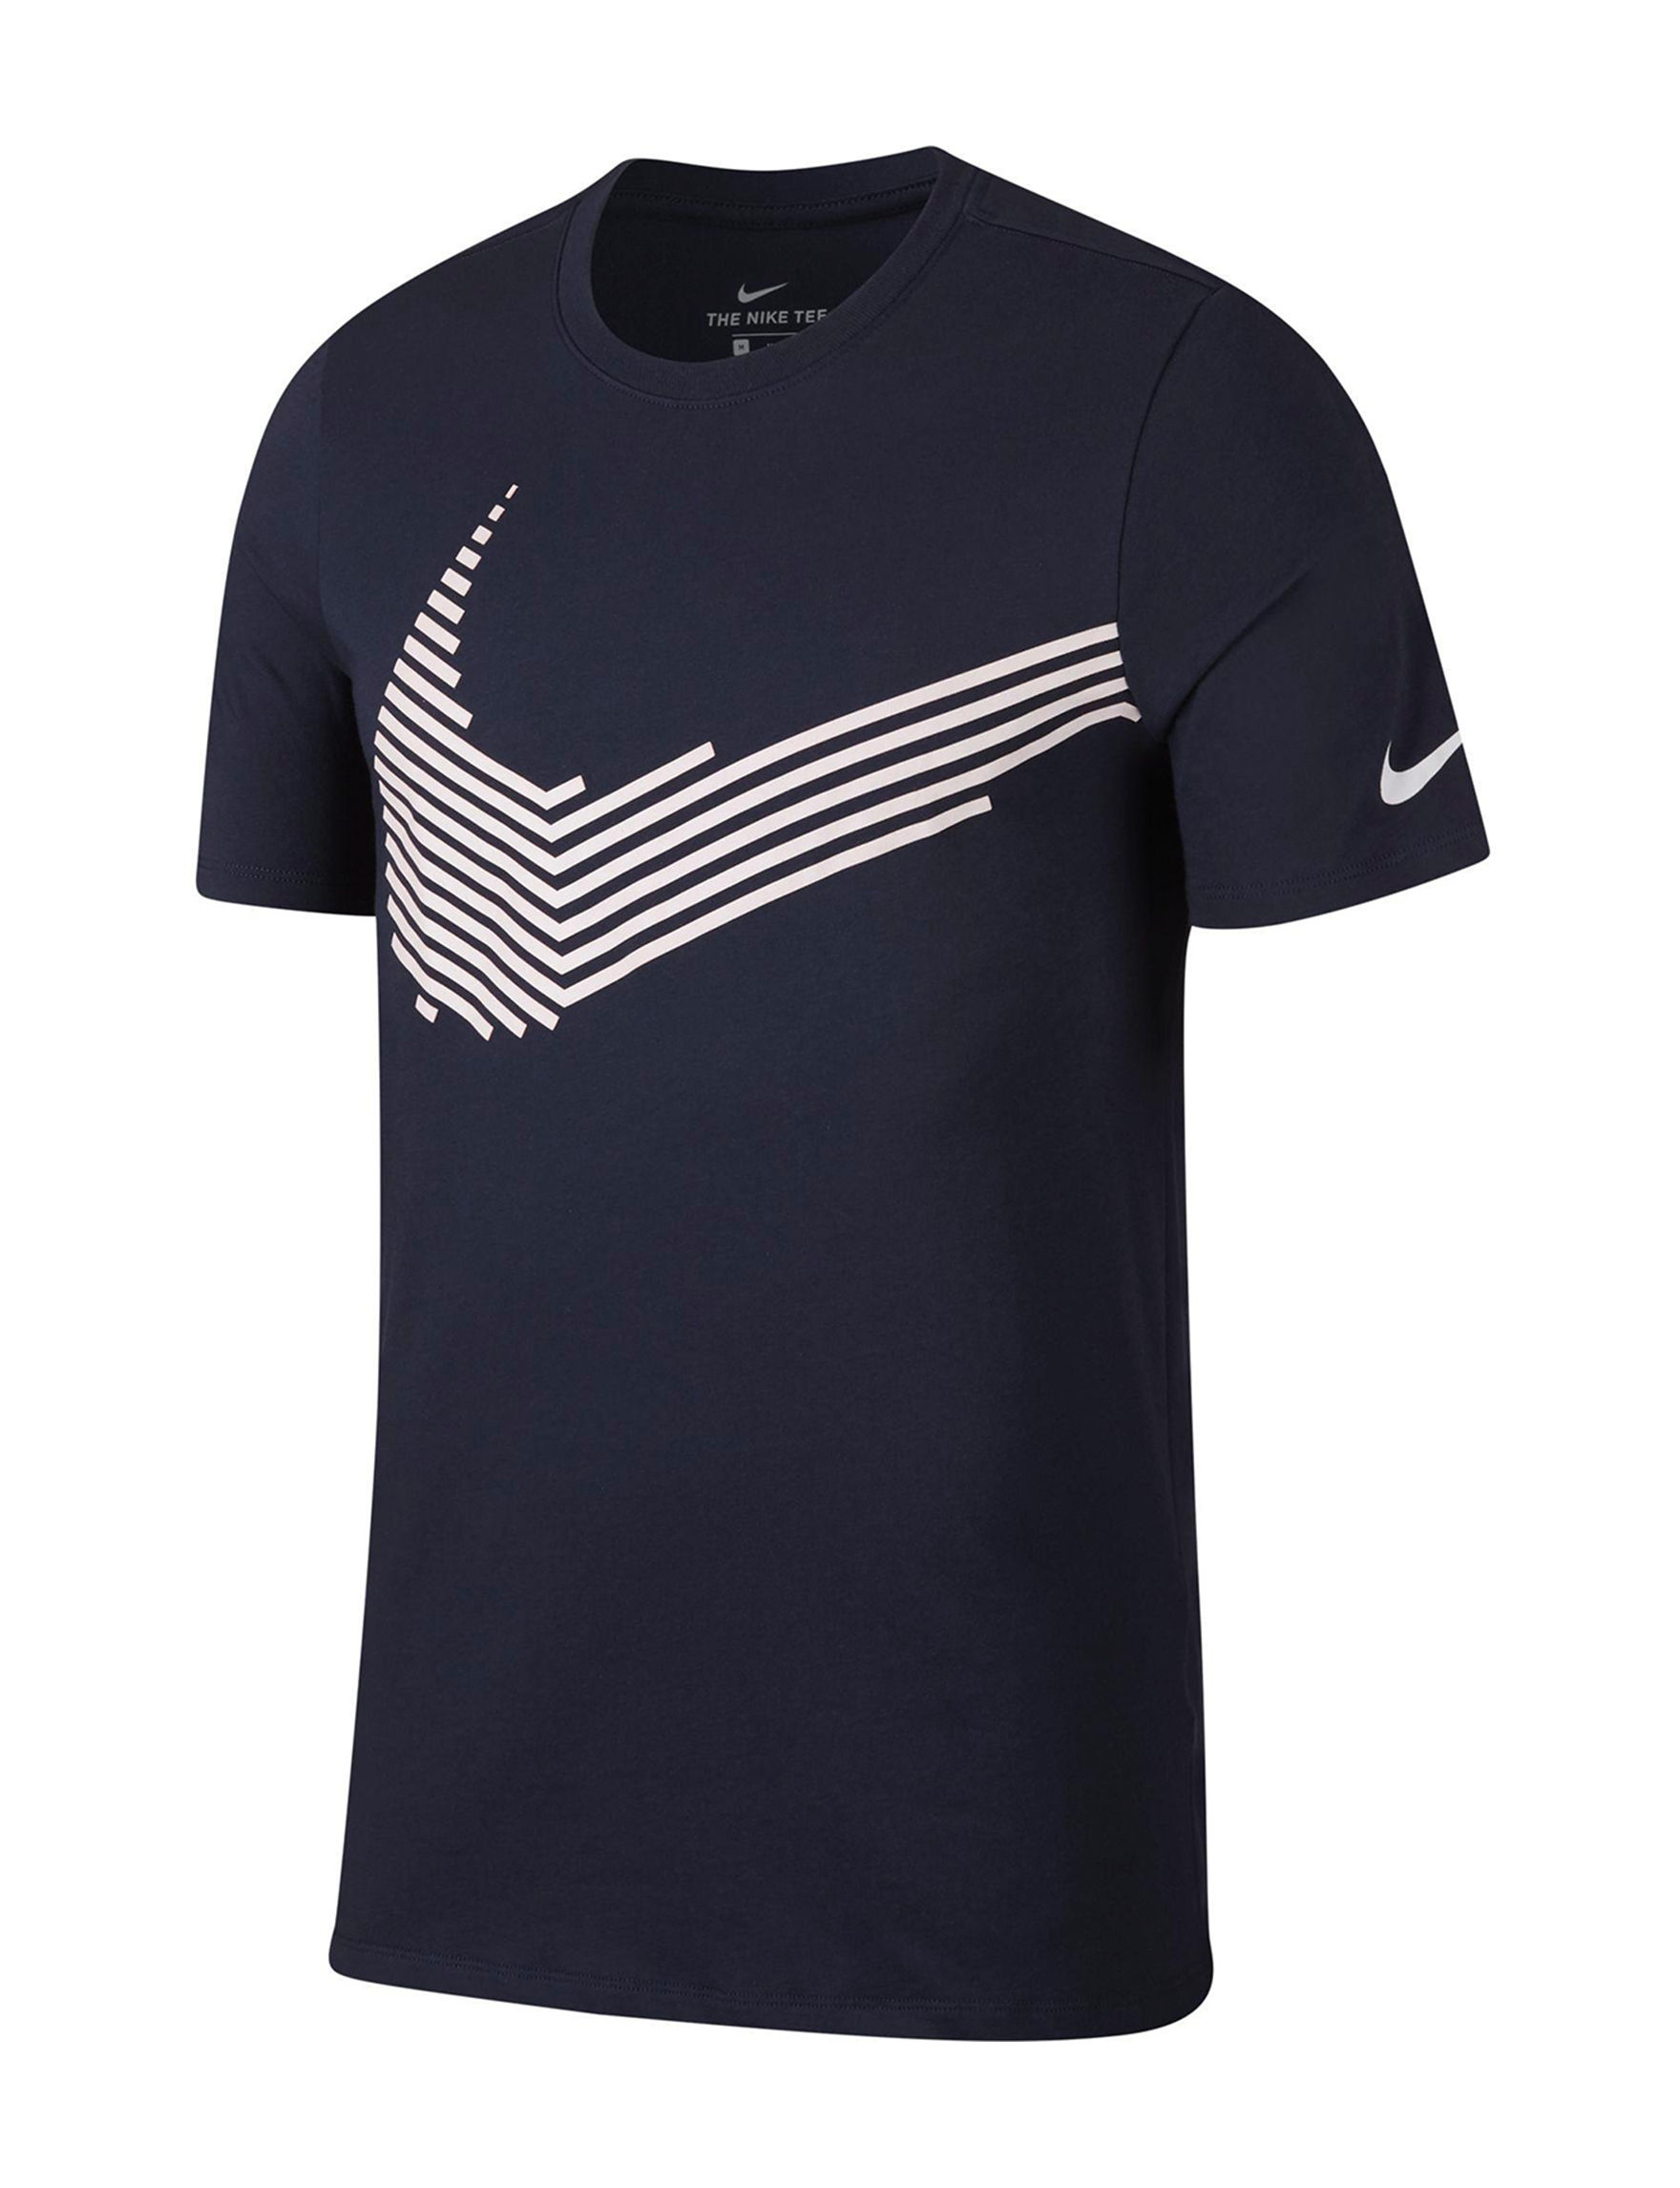 Nike Navy / White Tees & Tanks